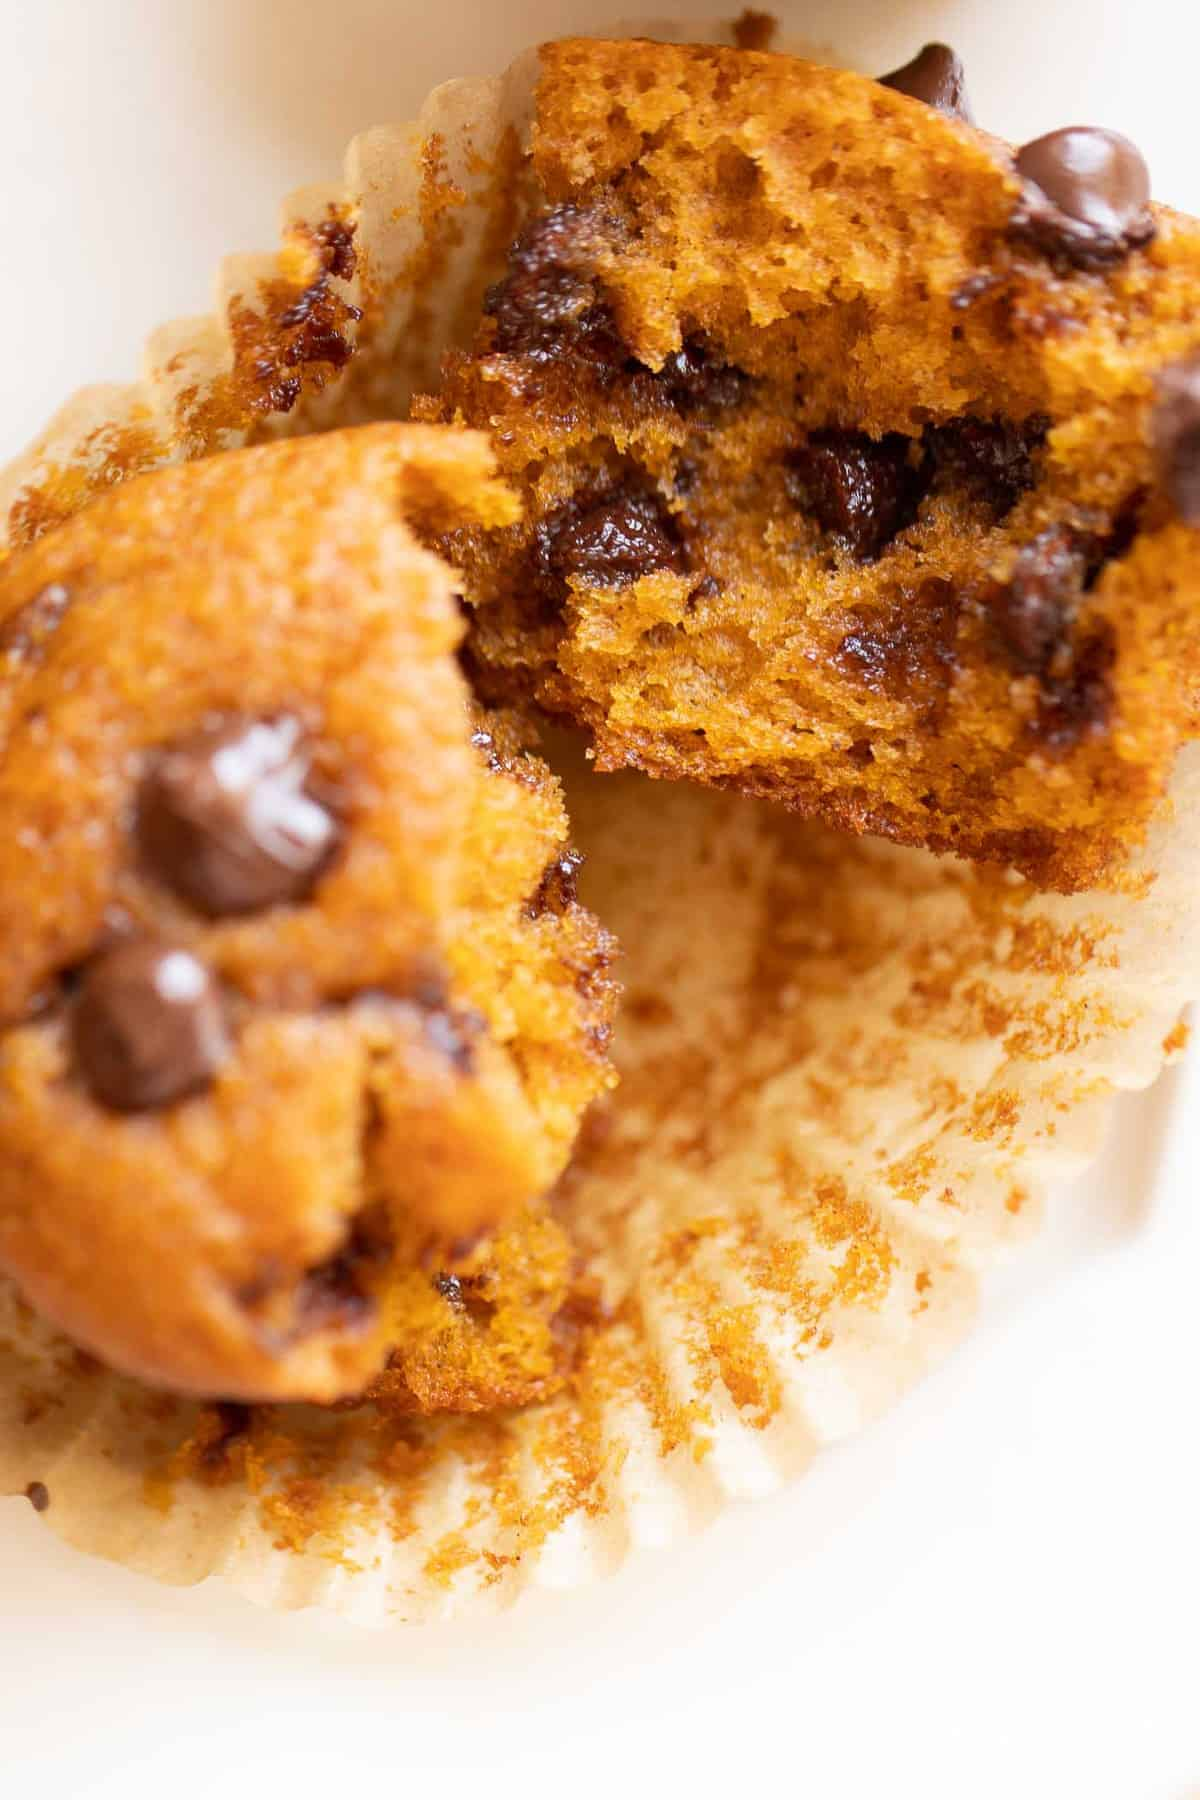 pumpkin chocolate chip muffin split in half